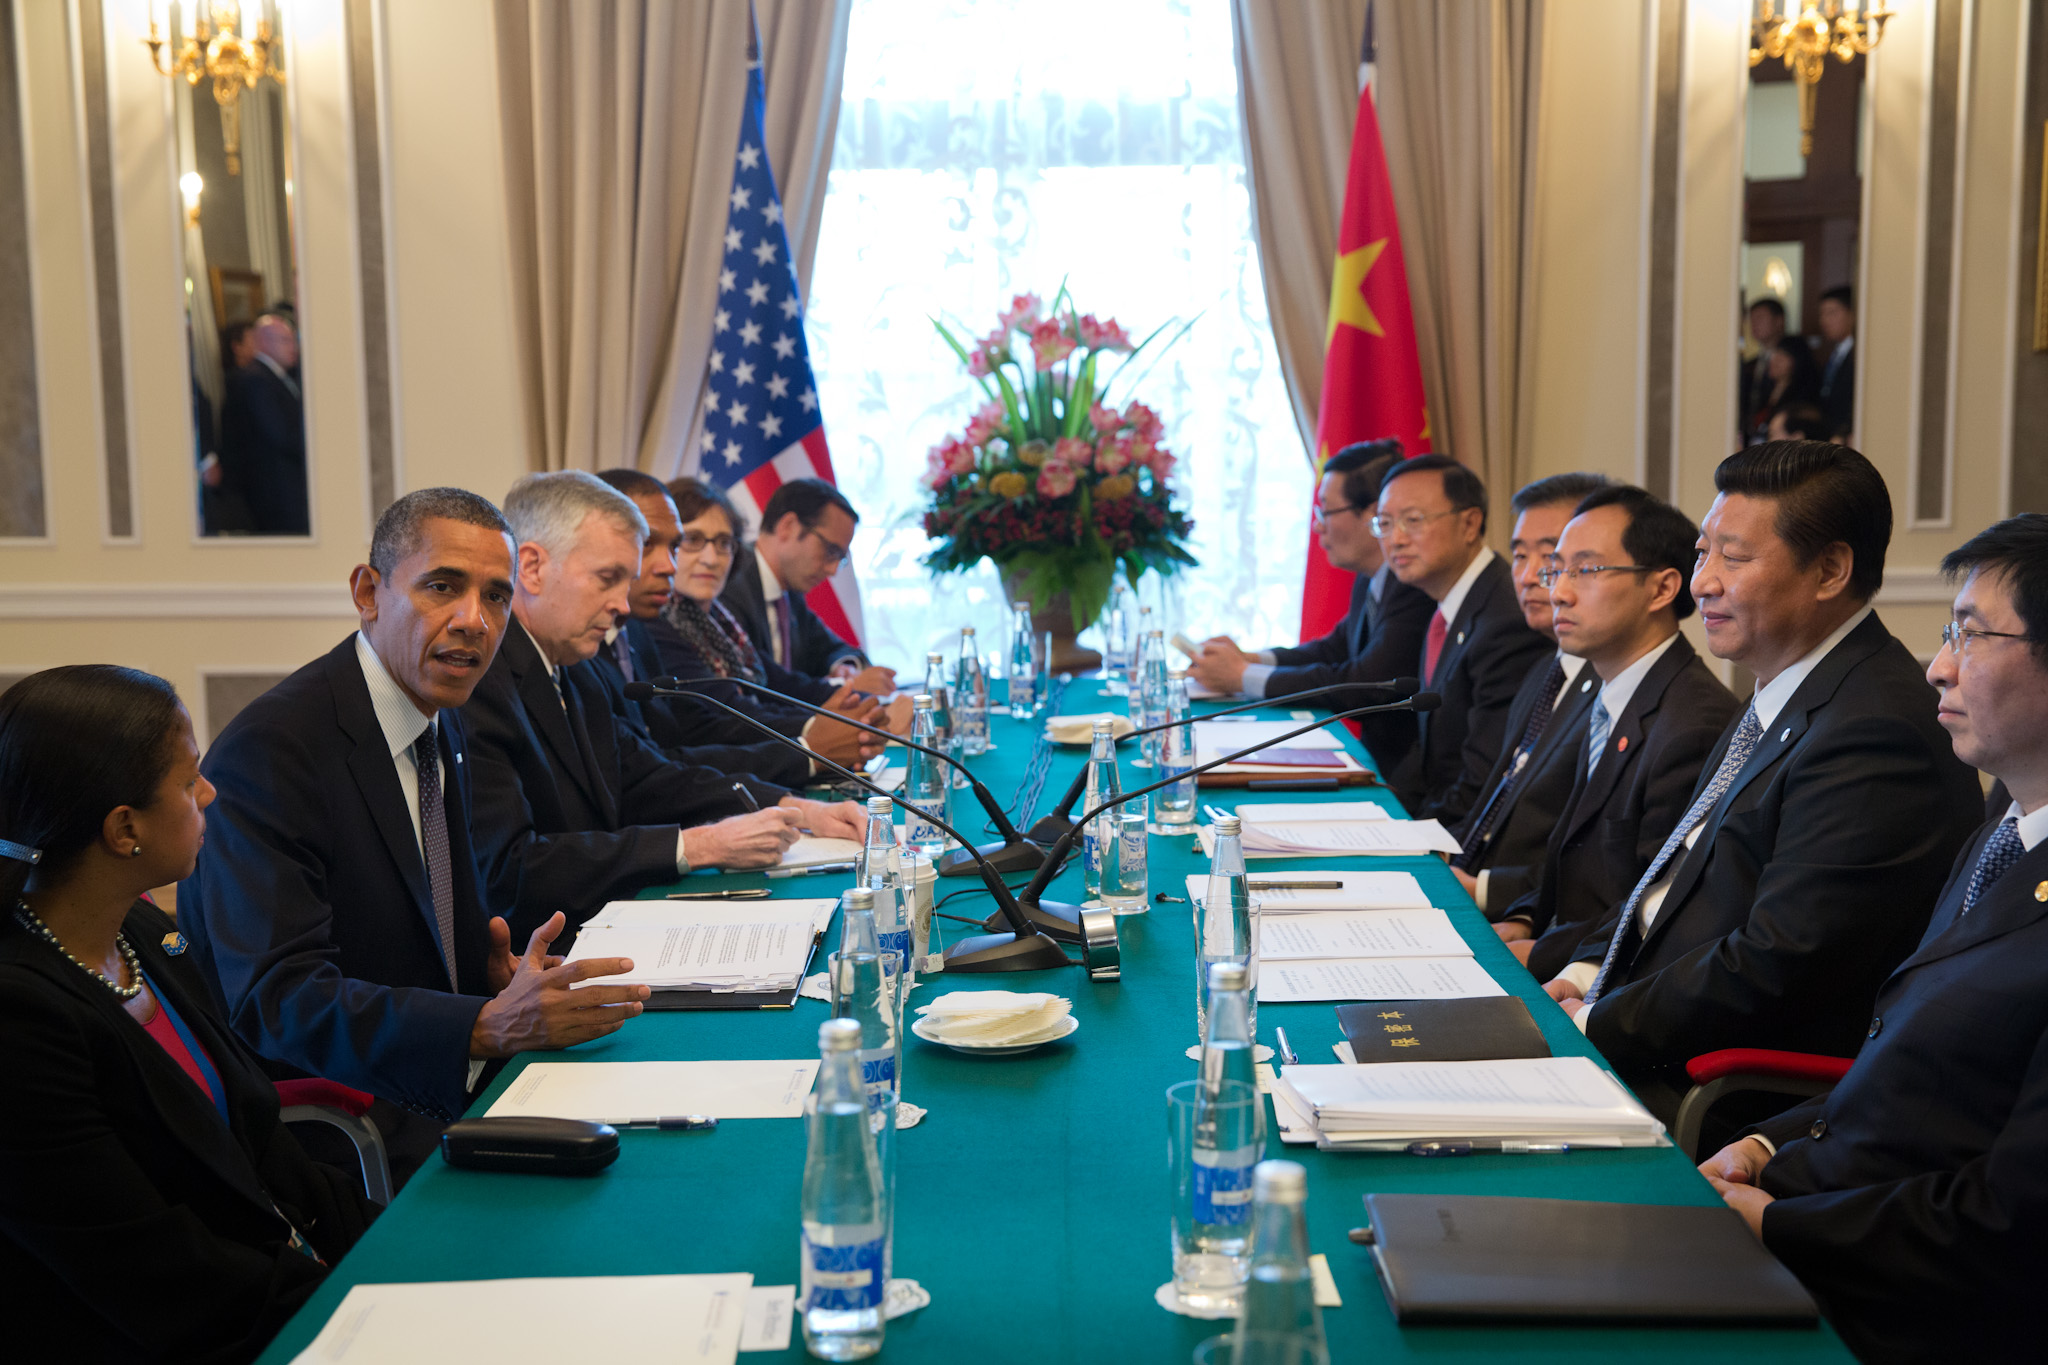 President Barack Obama, with China's President Xi Jinping, delivers remarks